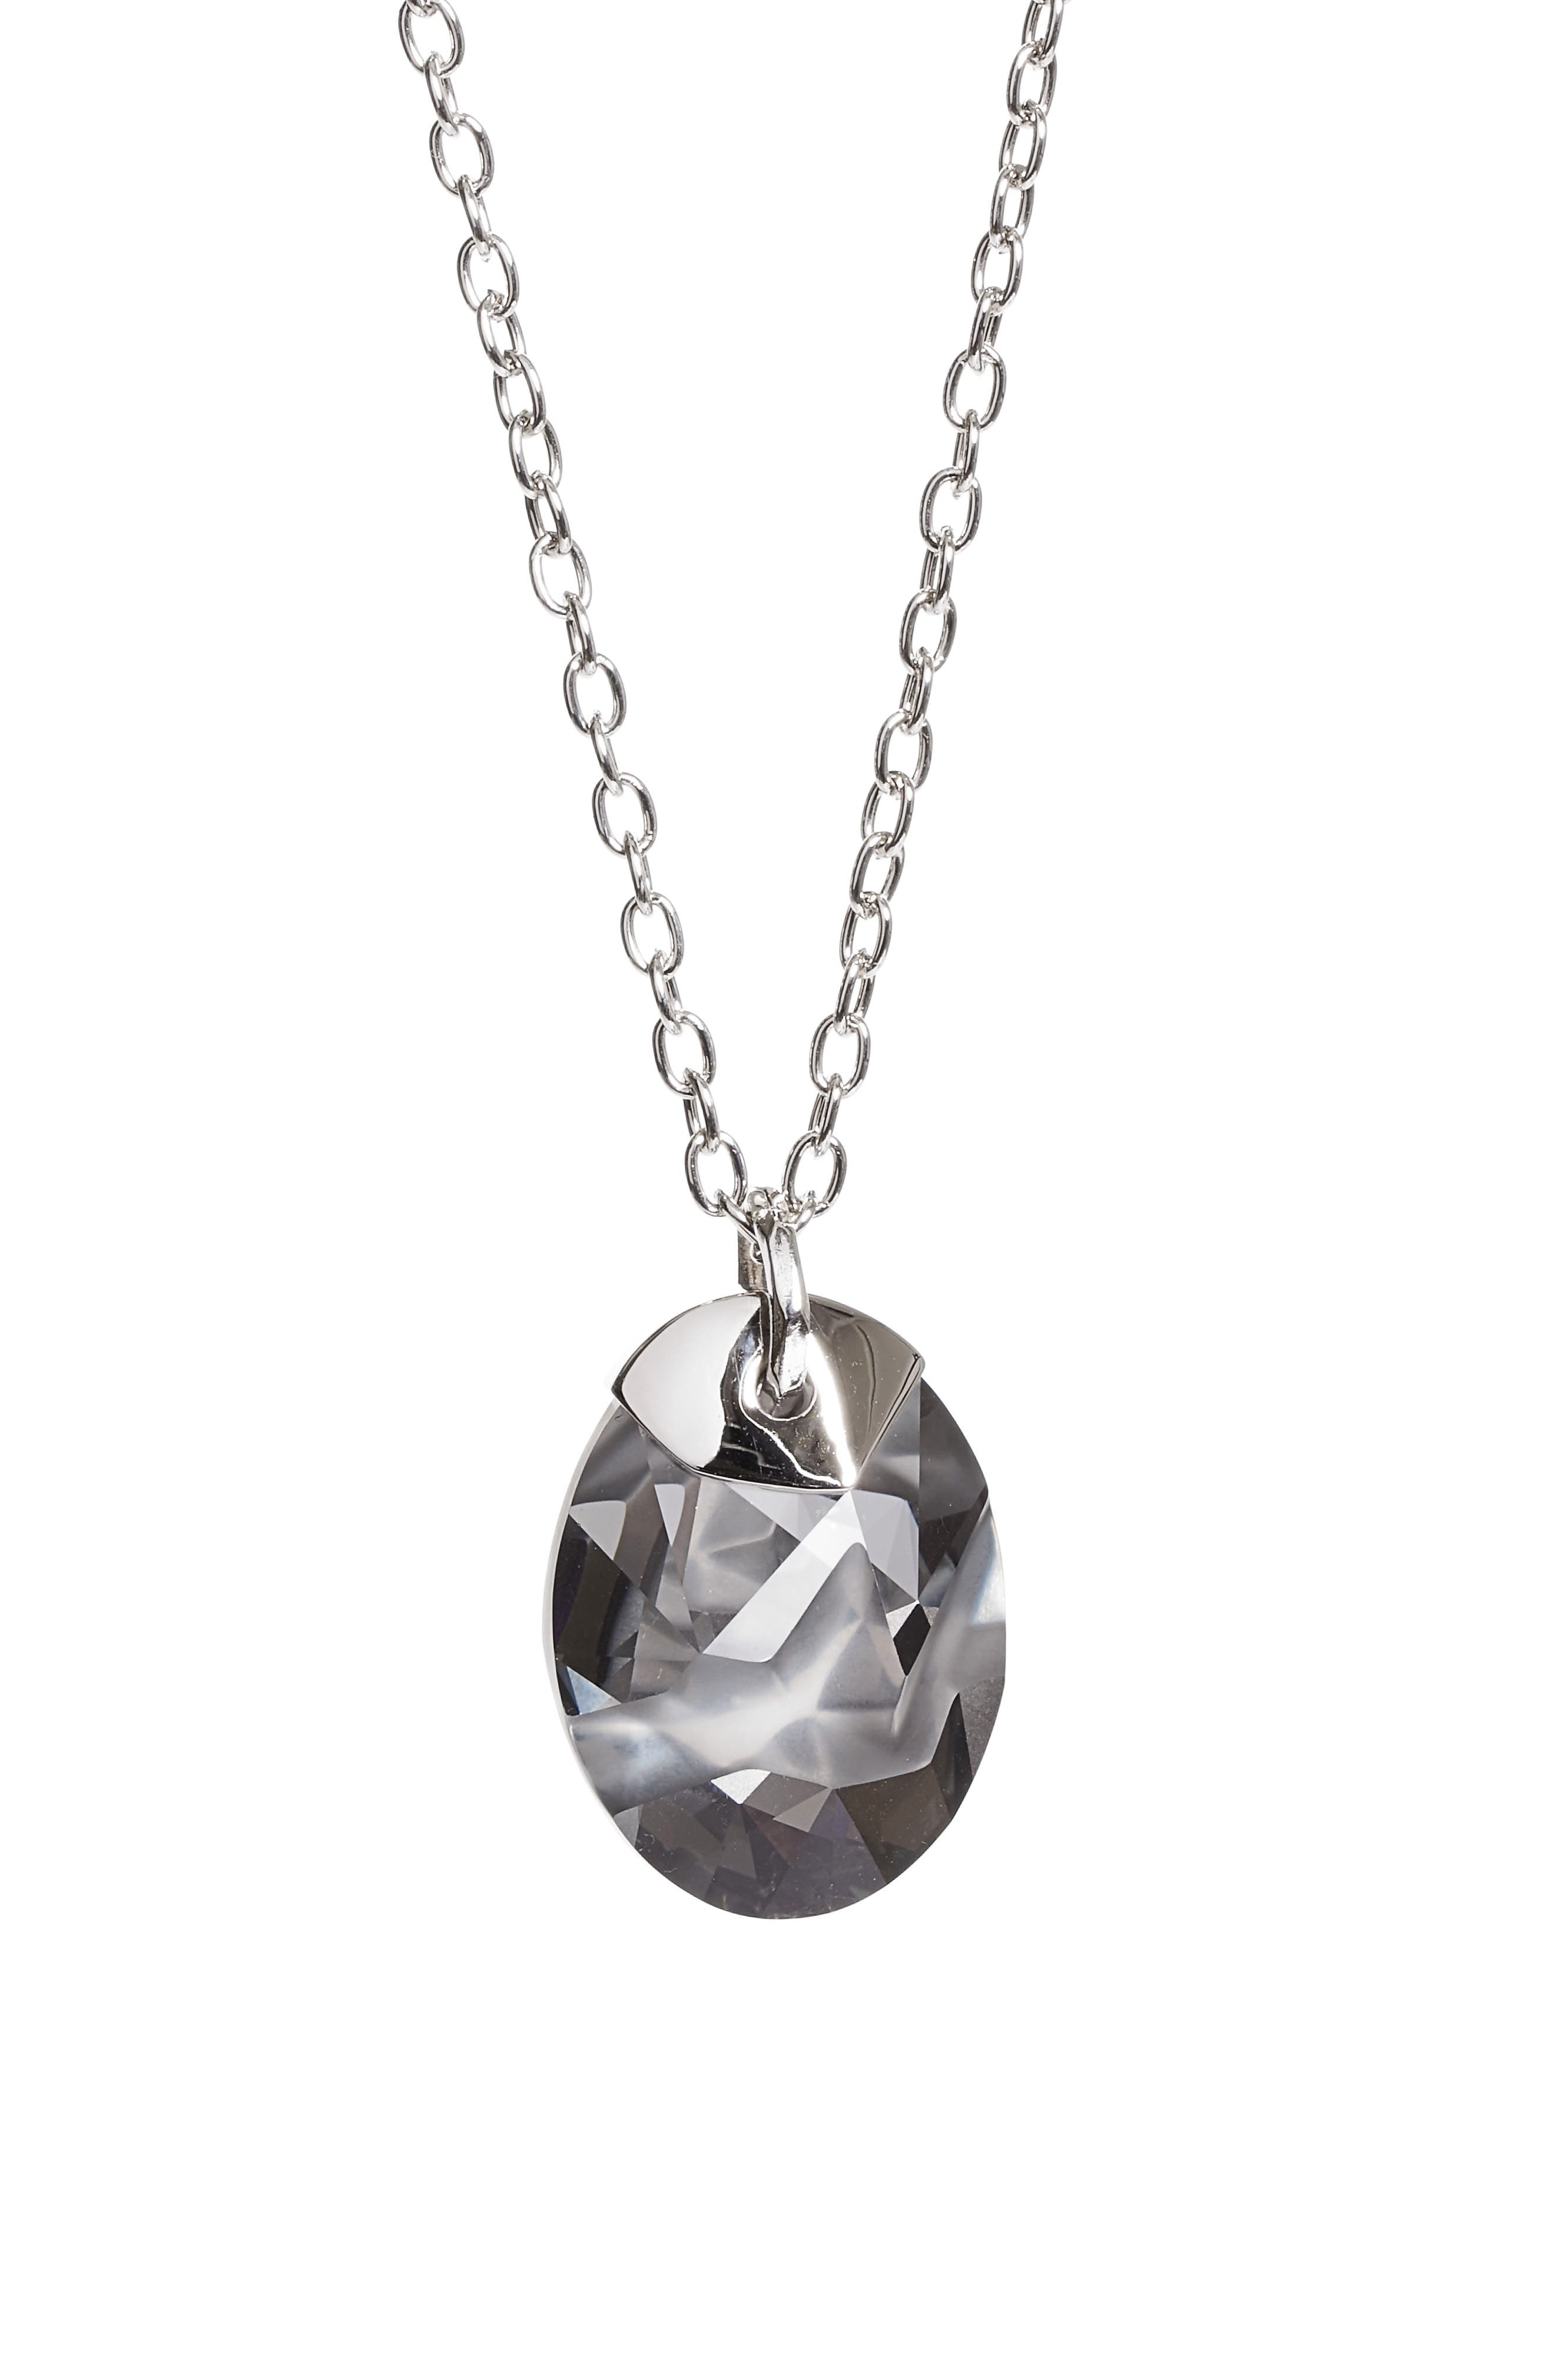 Swarovski Crystal Pendant Necklace,                             Main thumbnail 1, color,